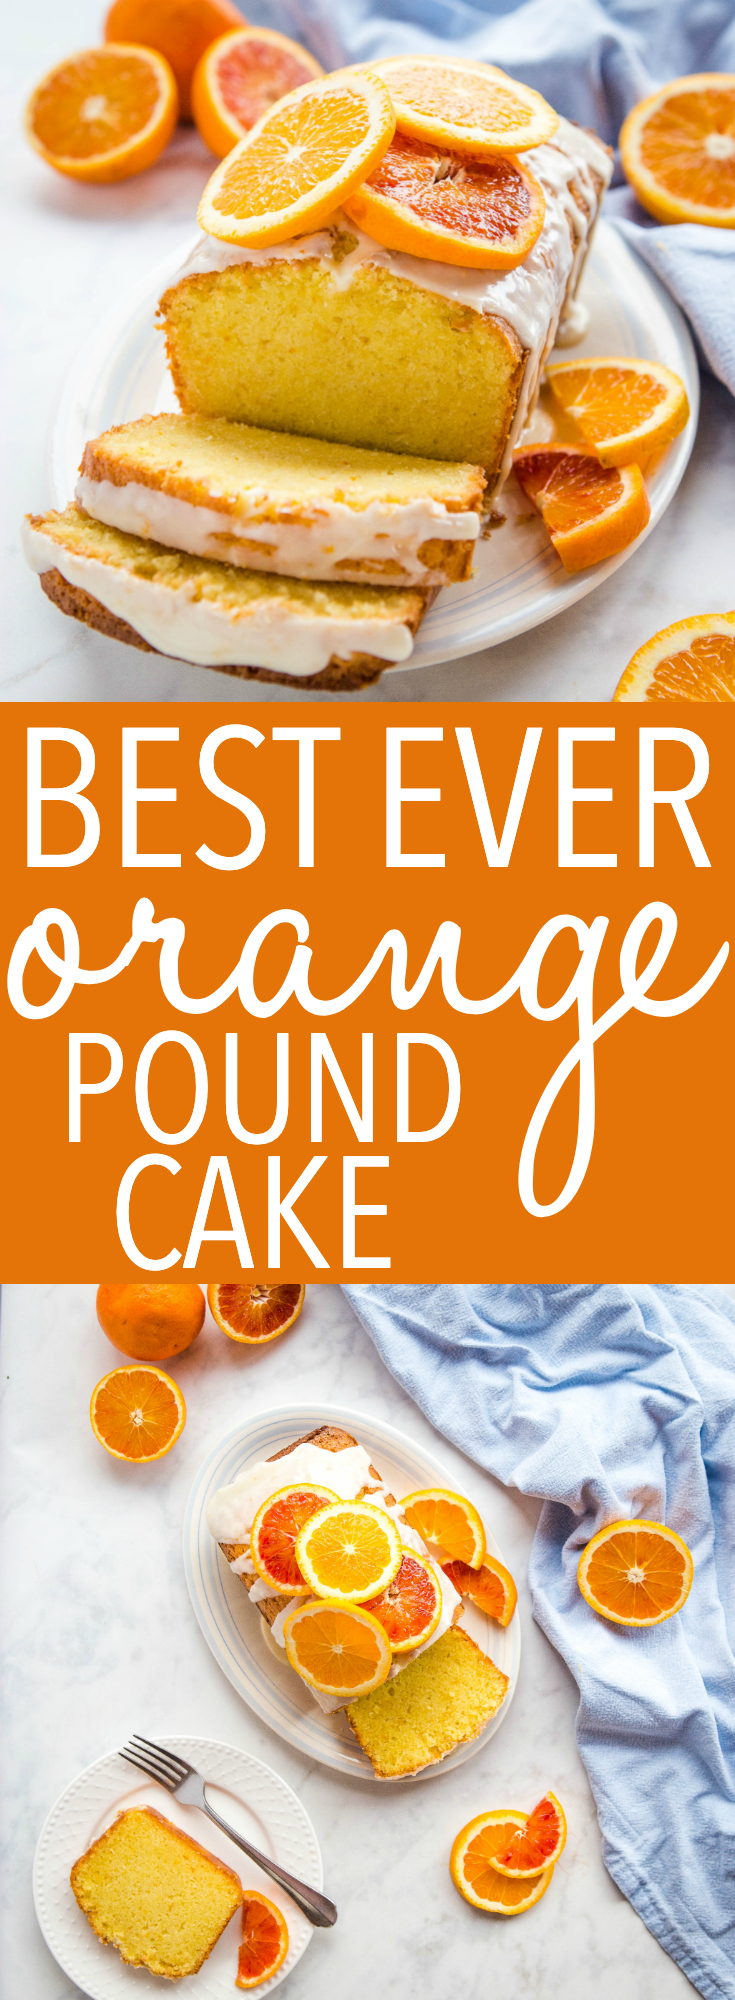 Orange Sour Cream Pound Cake is a perfectly simple, easy-to-make dessert. Use fresh oranges when you make this citrus glaze pound cake recipe! Recipe from thebusybaker.ca! #citrus #orange #poundcake #easycake #bloodorange #glaze #citrusglaze #frosting via @busybakerblog